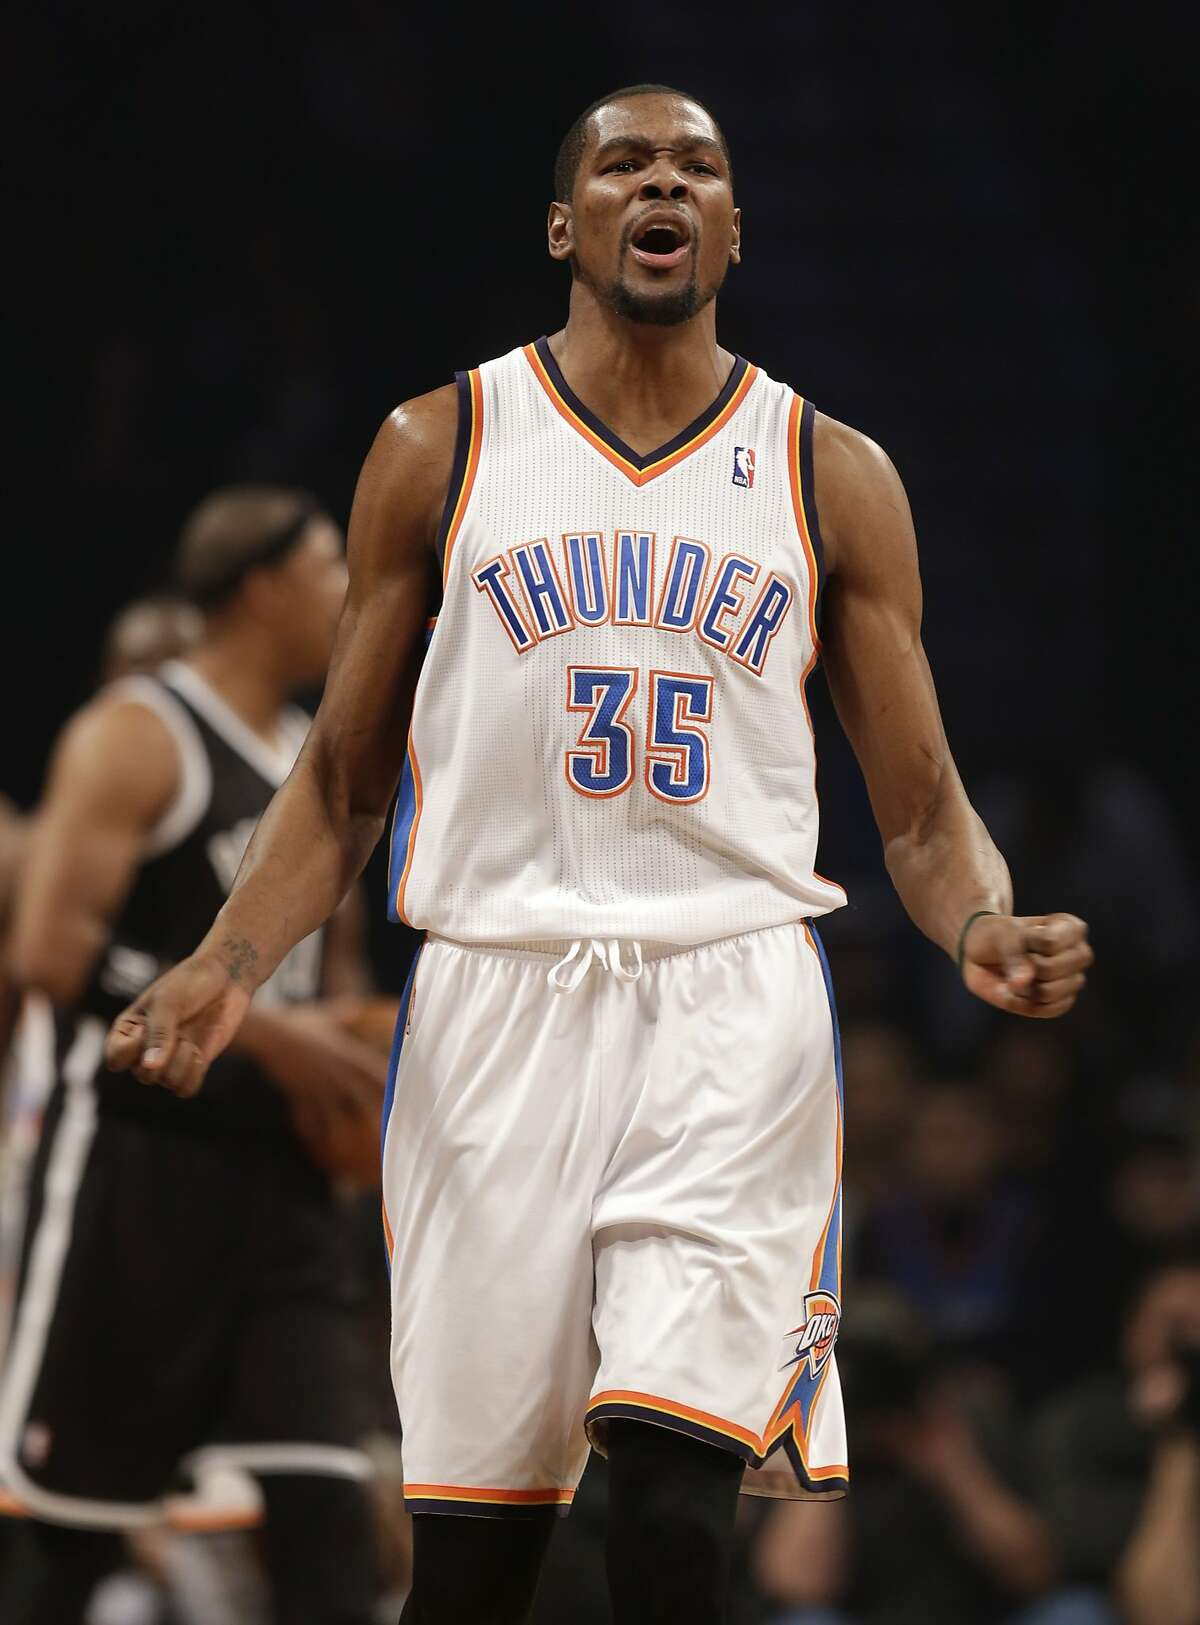 Oklahoma City Thunder's Kevin Durant reacts during the first half of the NBA basketball game at the Barclays Center, Friday, Jan. 31, 2014, in New York. (AP Photo/Seth Wenig)